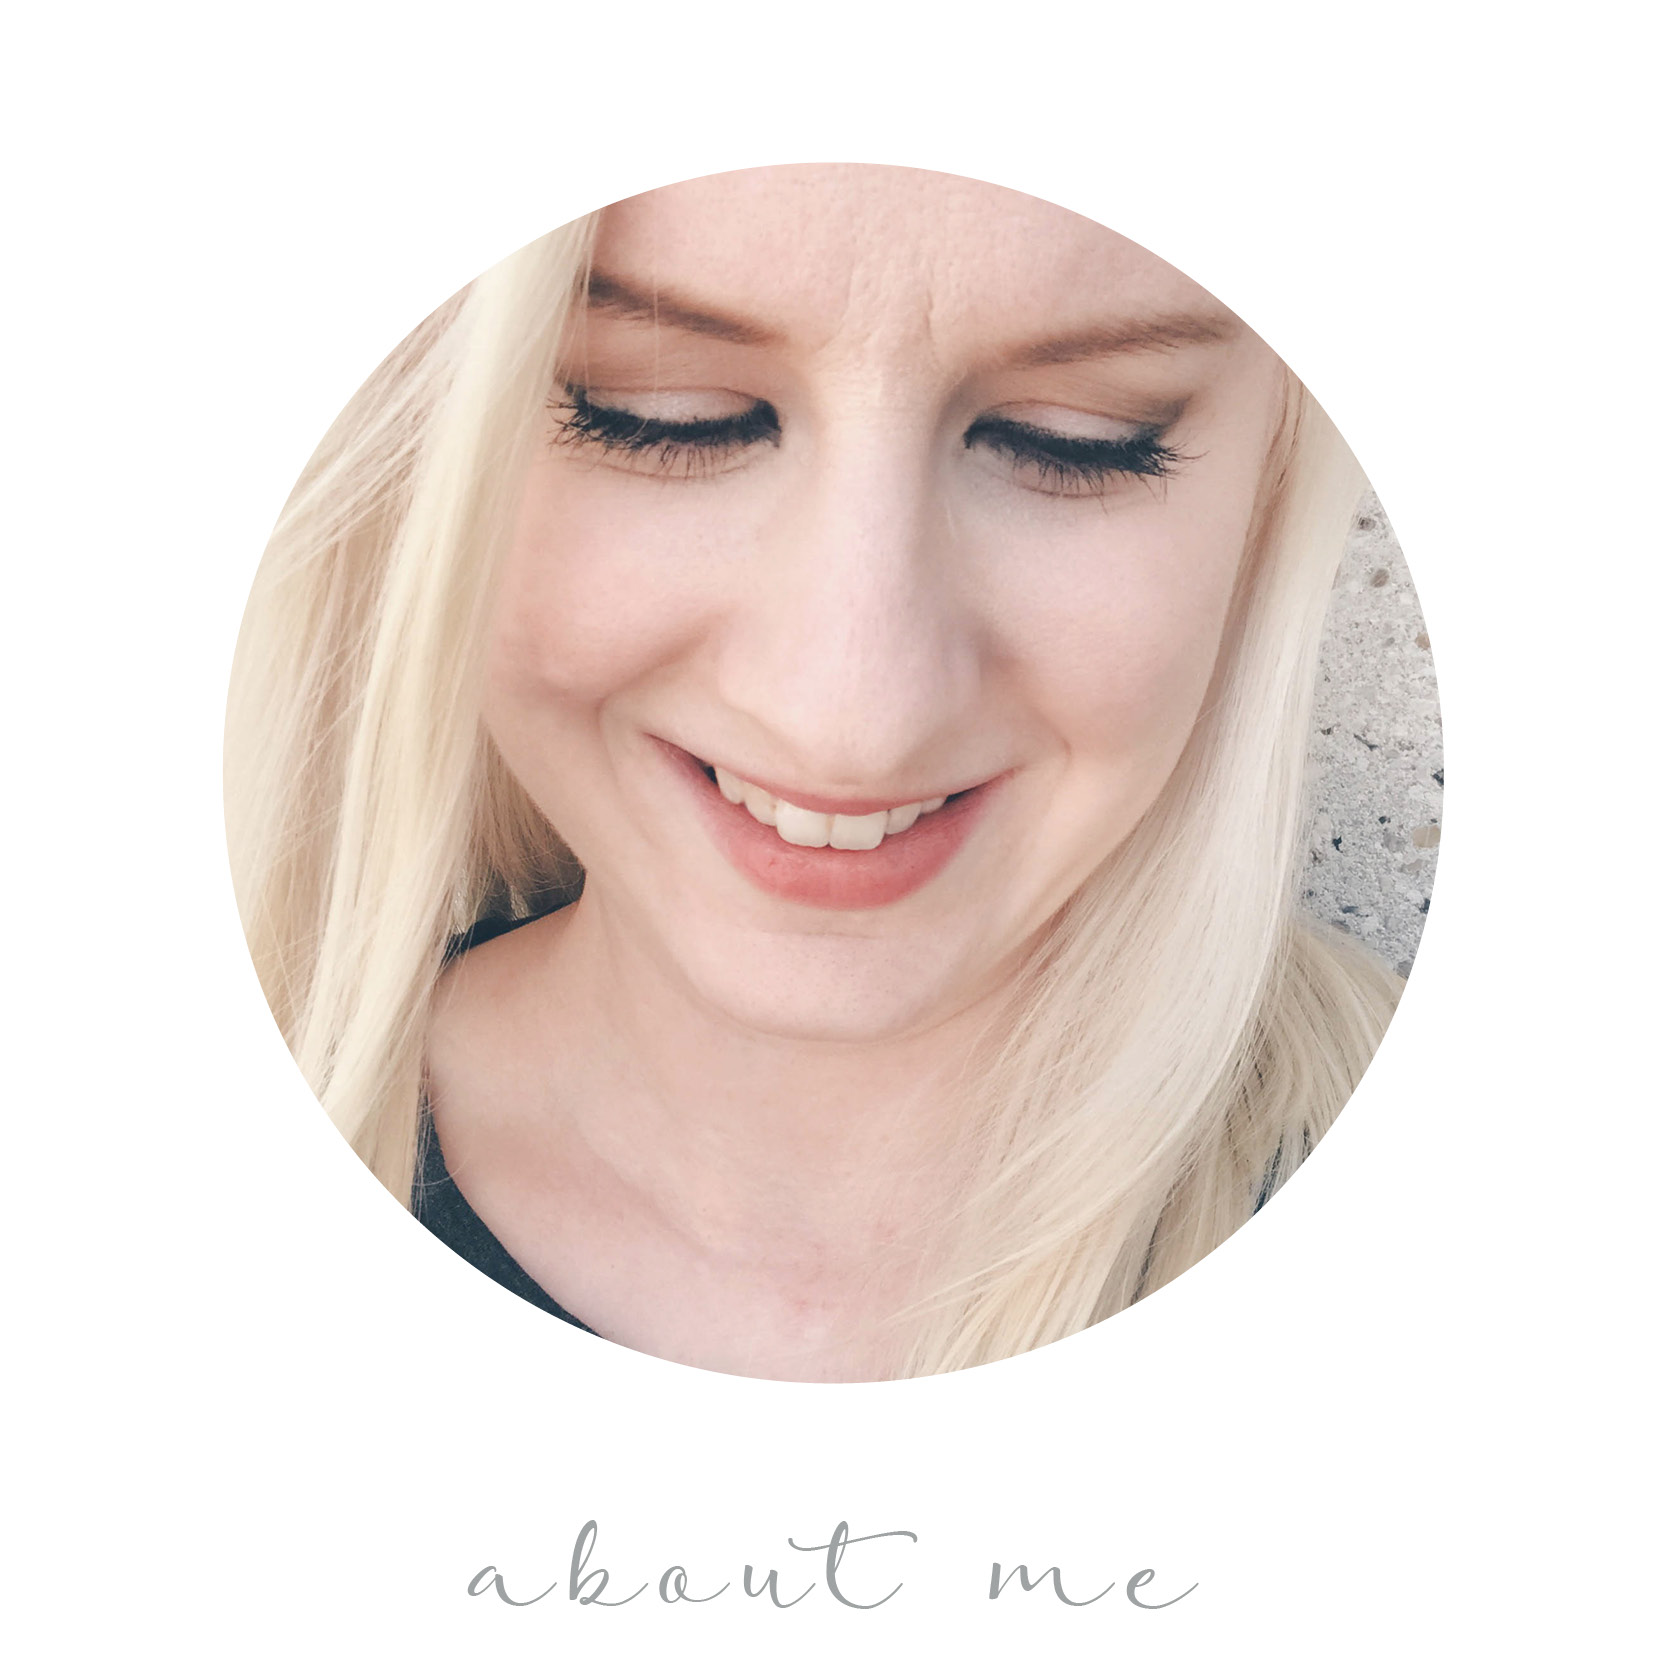 Round About Me